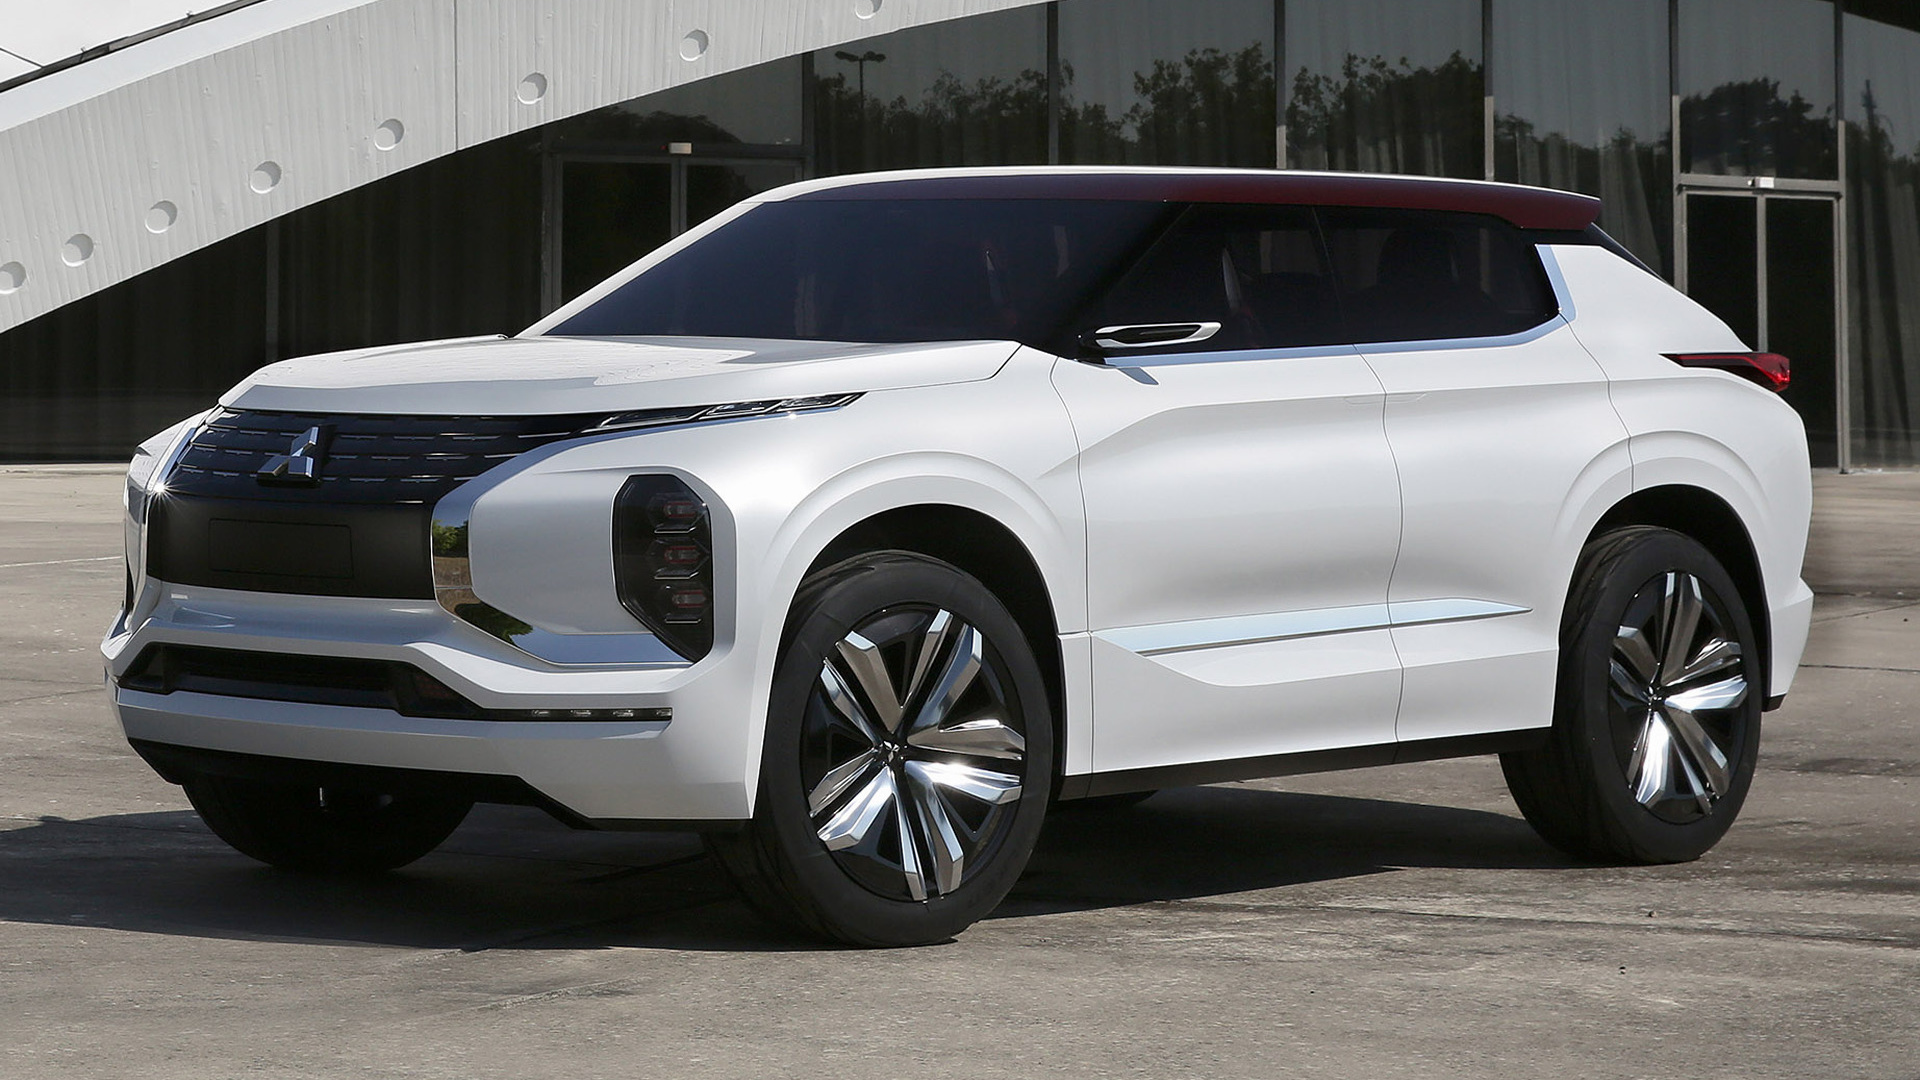 New Mitsubishi GTPHEV Concept 2016 Wallpapers And HD Images